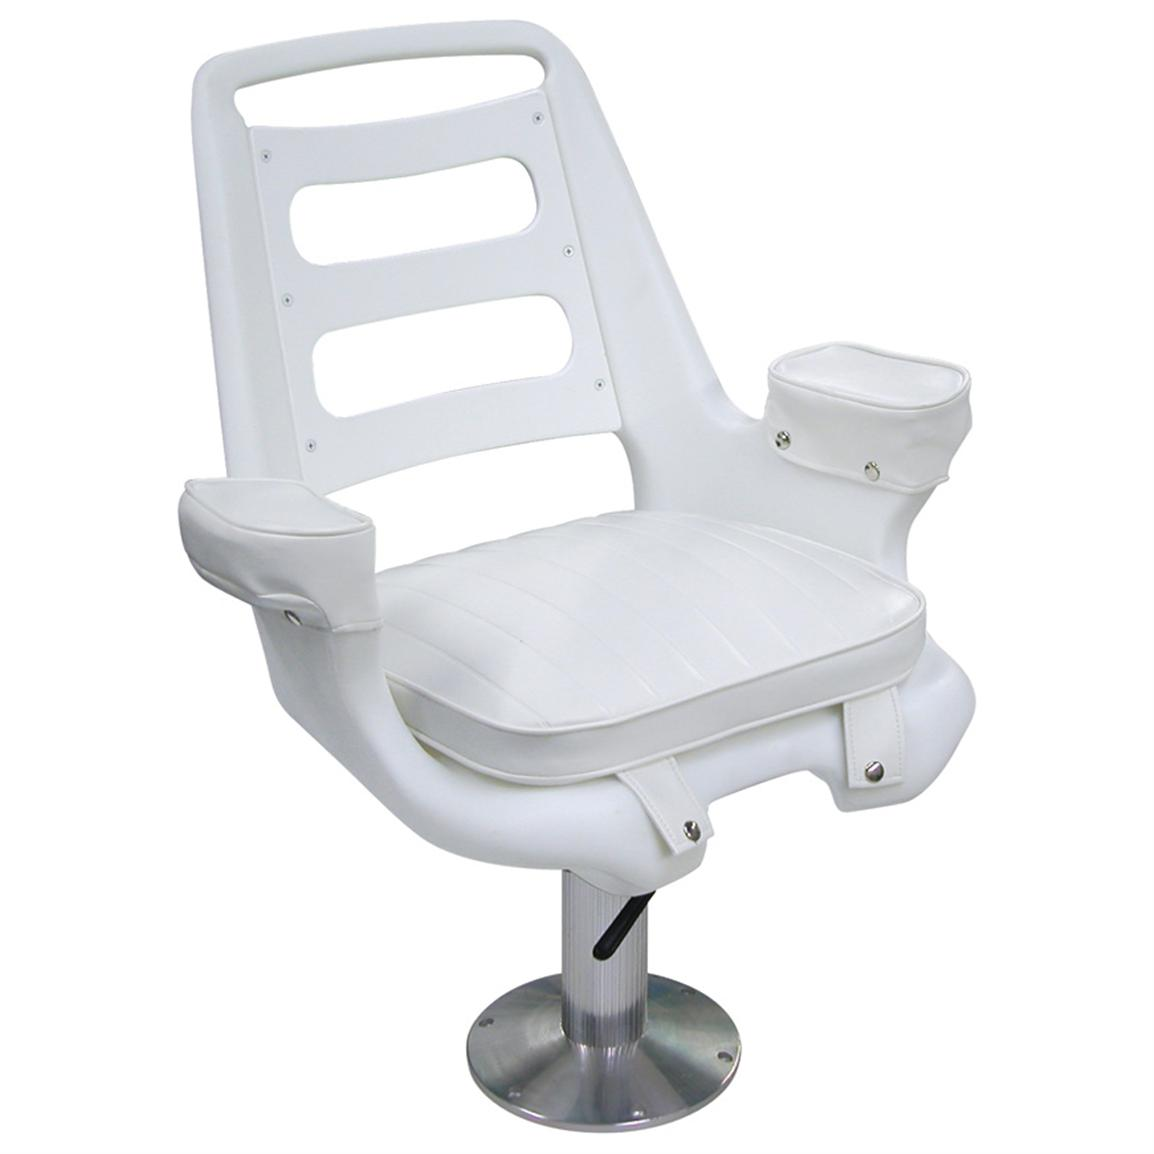 Pedestal Chairs Wise Offshore Extra Wide Captain 39s Chair With Pedestal